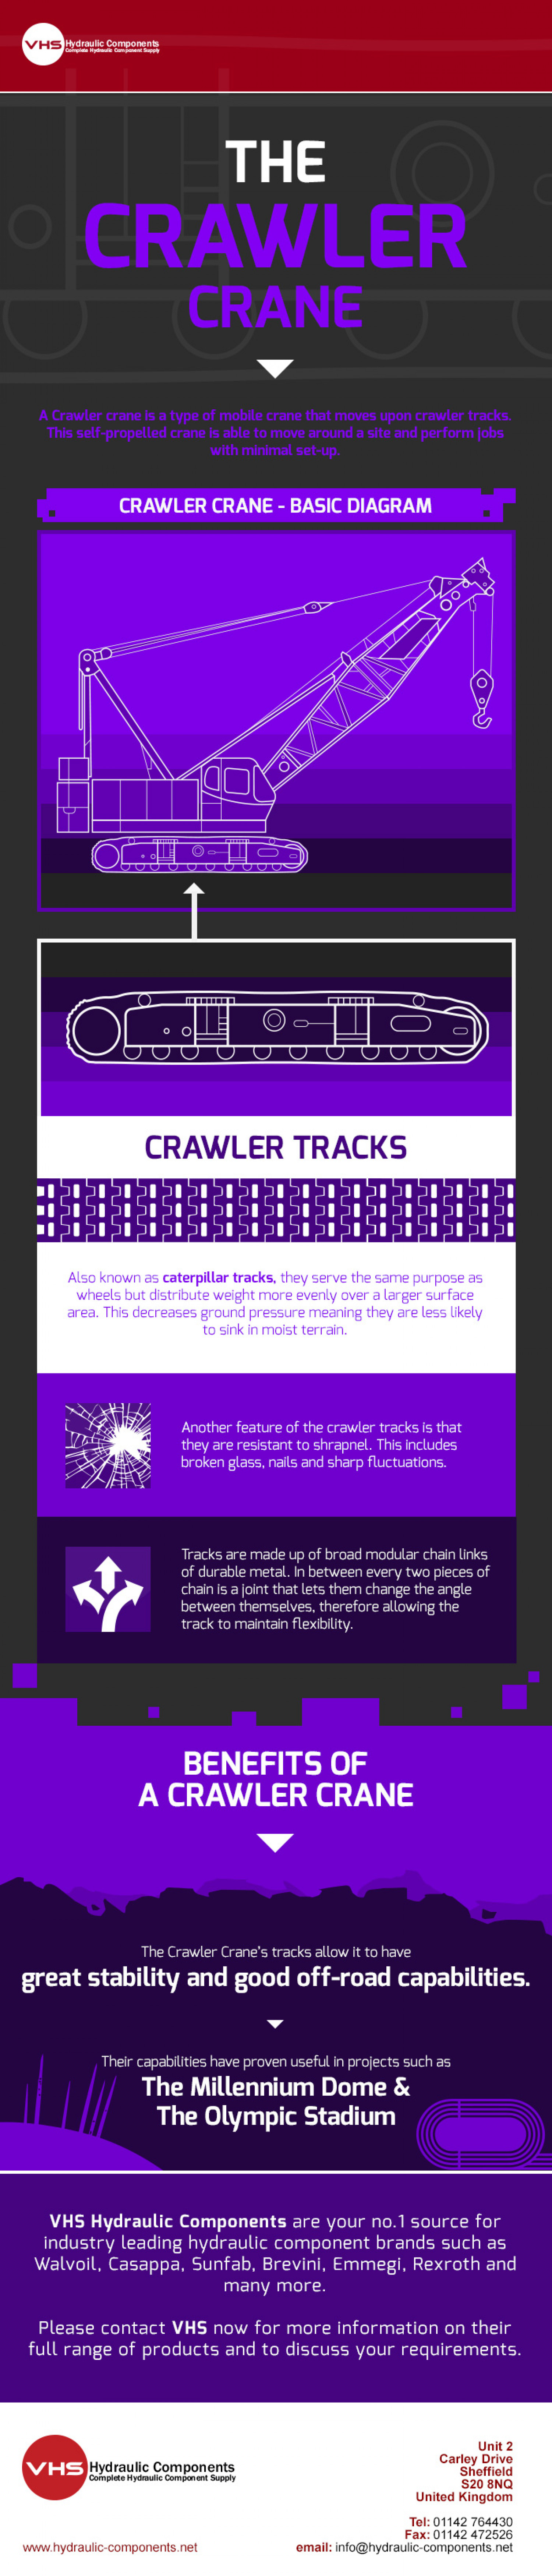 The Crawler Crane Infographic